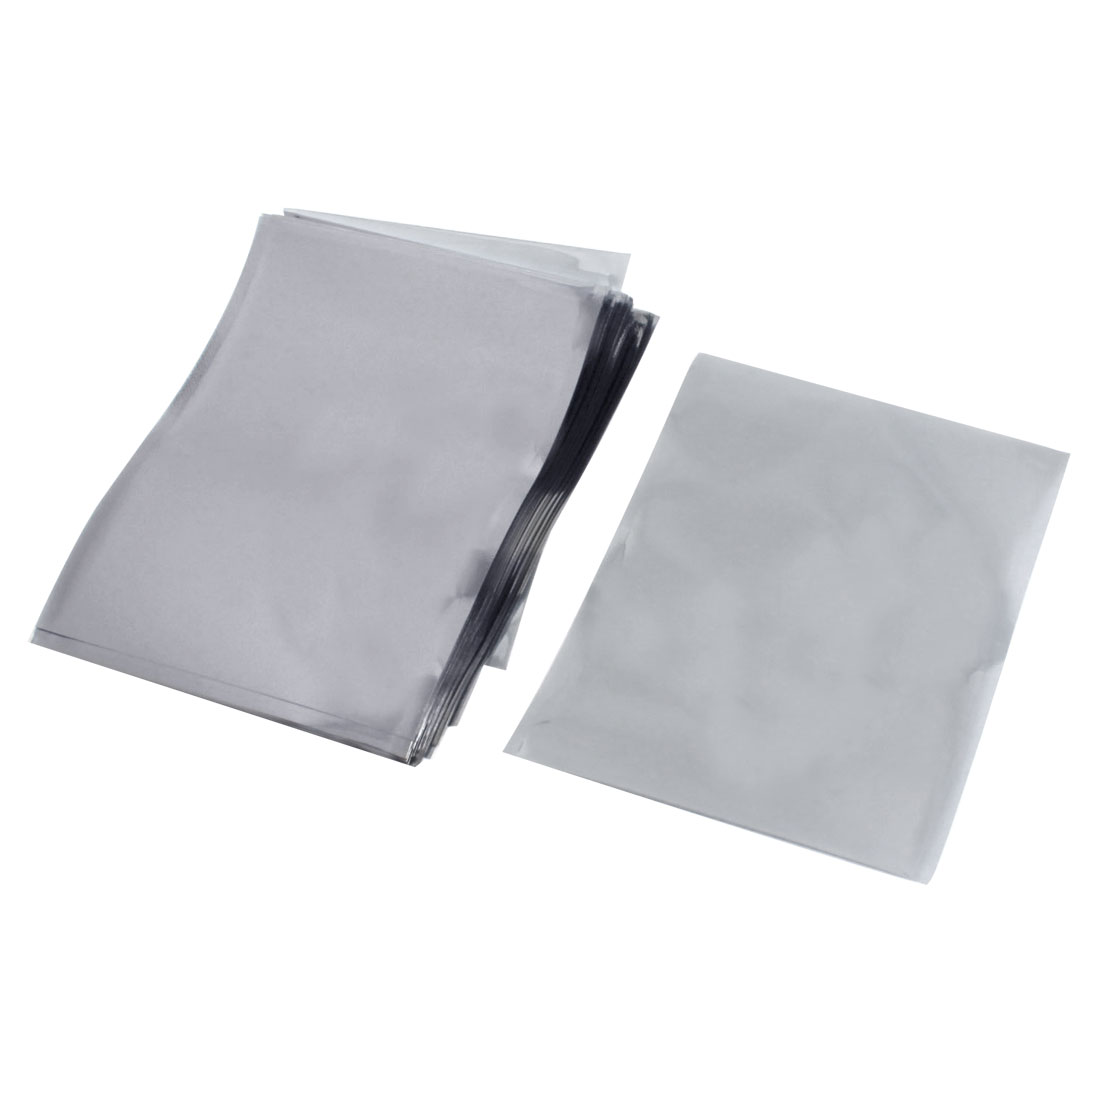 "50Pcs 5"" x 6"" Anti Static Shielding Bags Holders Protectors"